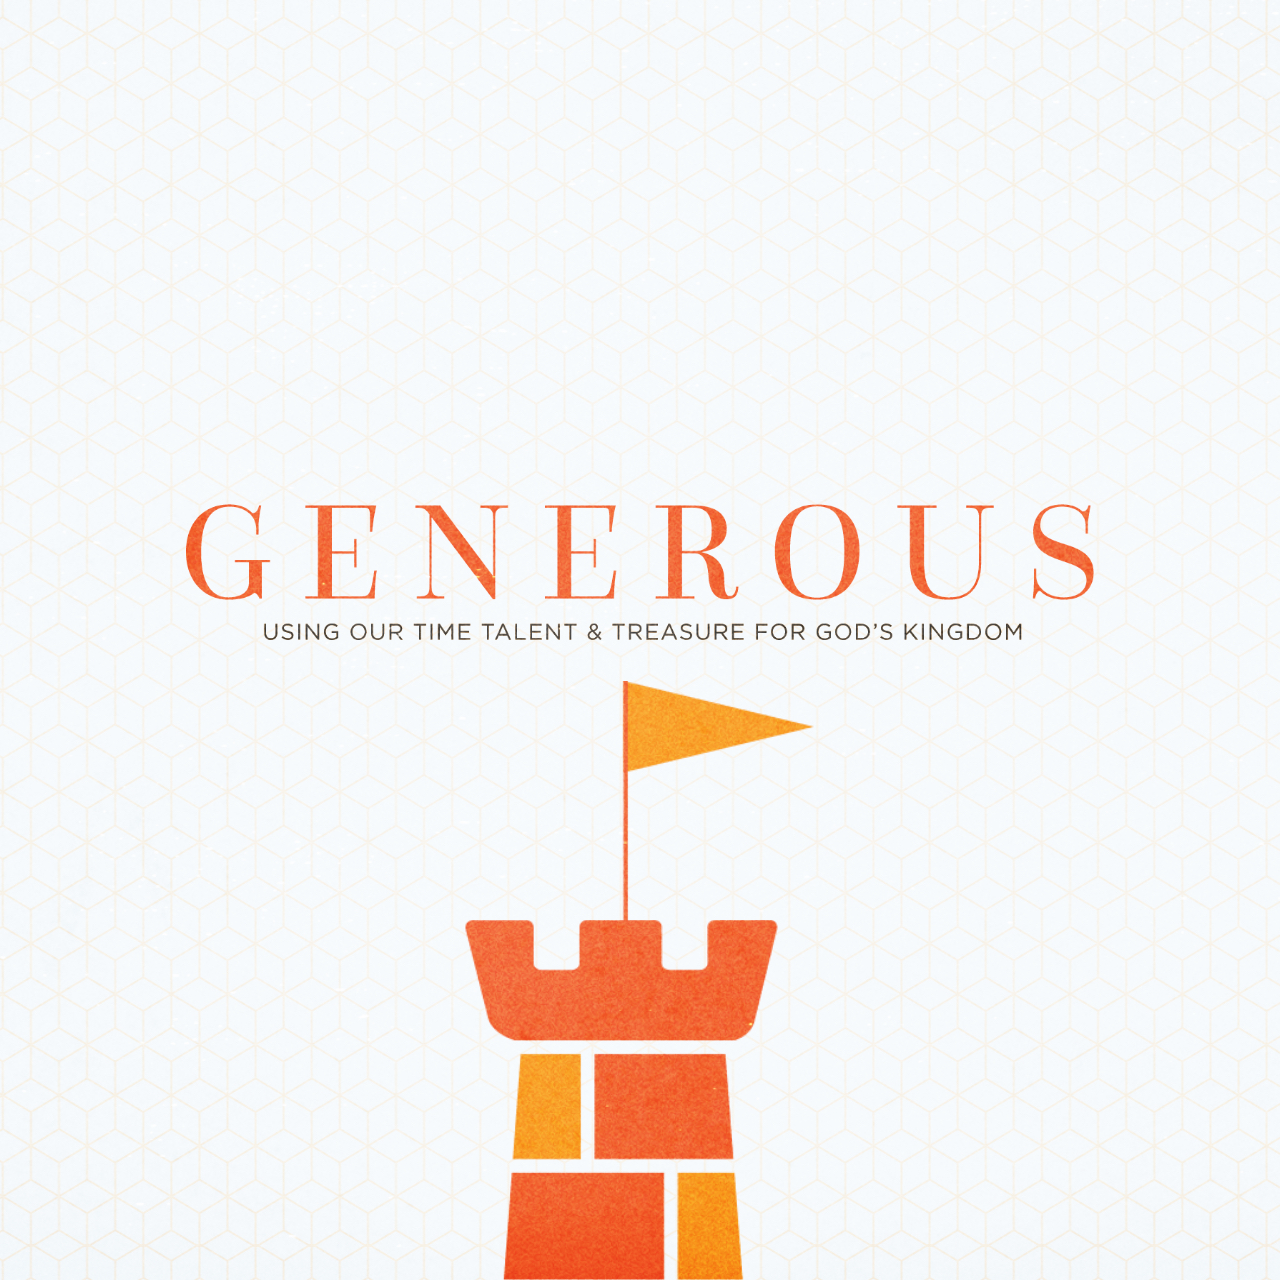 Generous: Whose Is It?